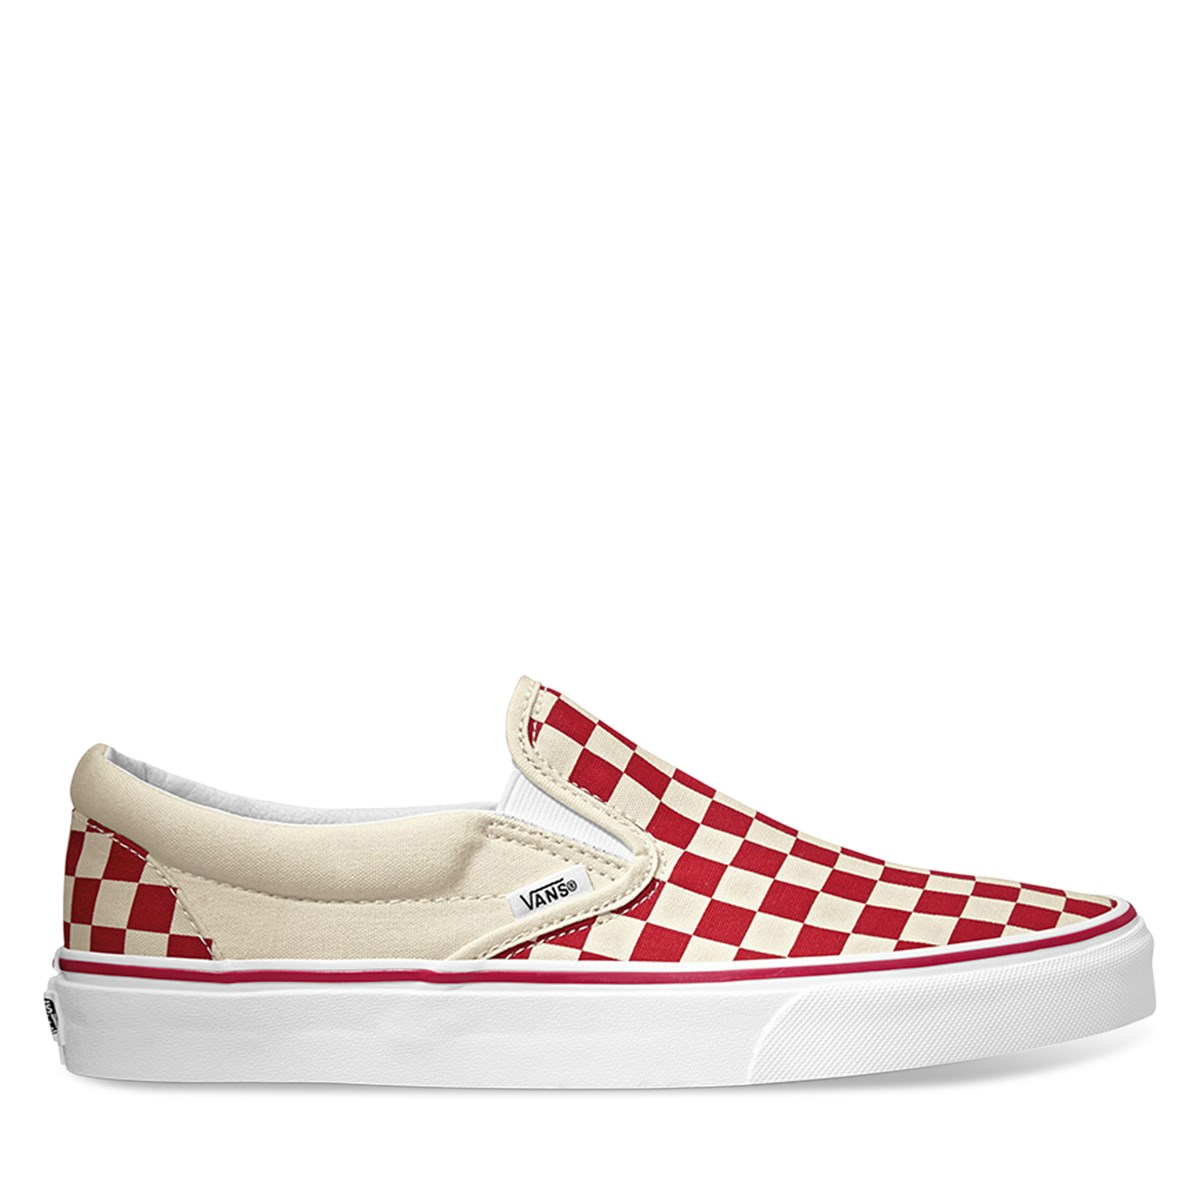 Primary Check Slip/Ons in Racing Red